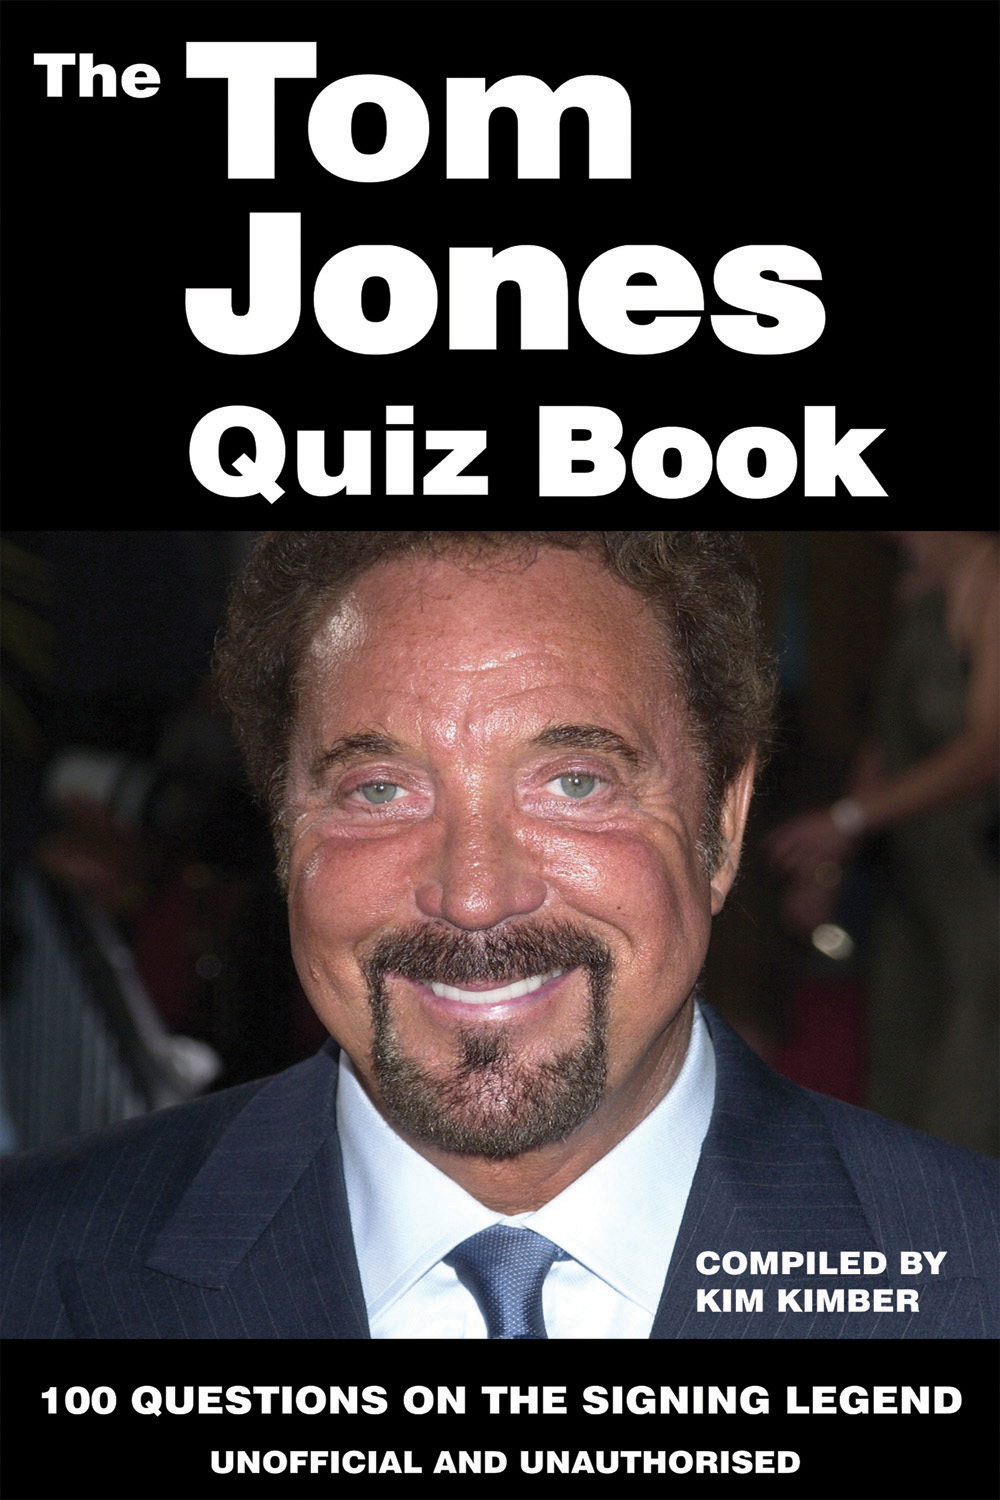 The Tom Jones Quiz Book